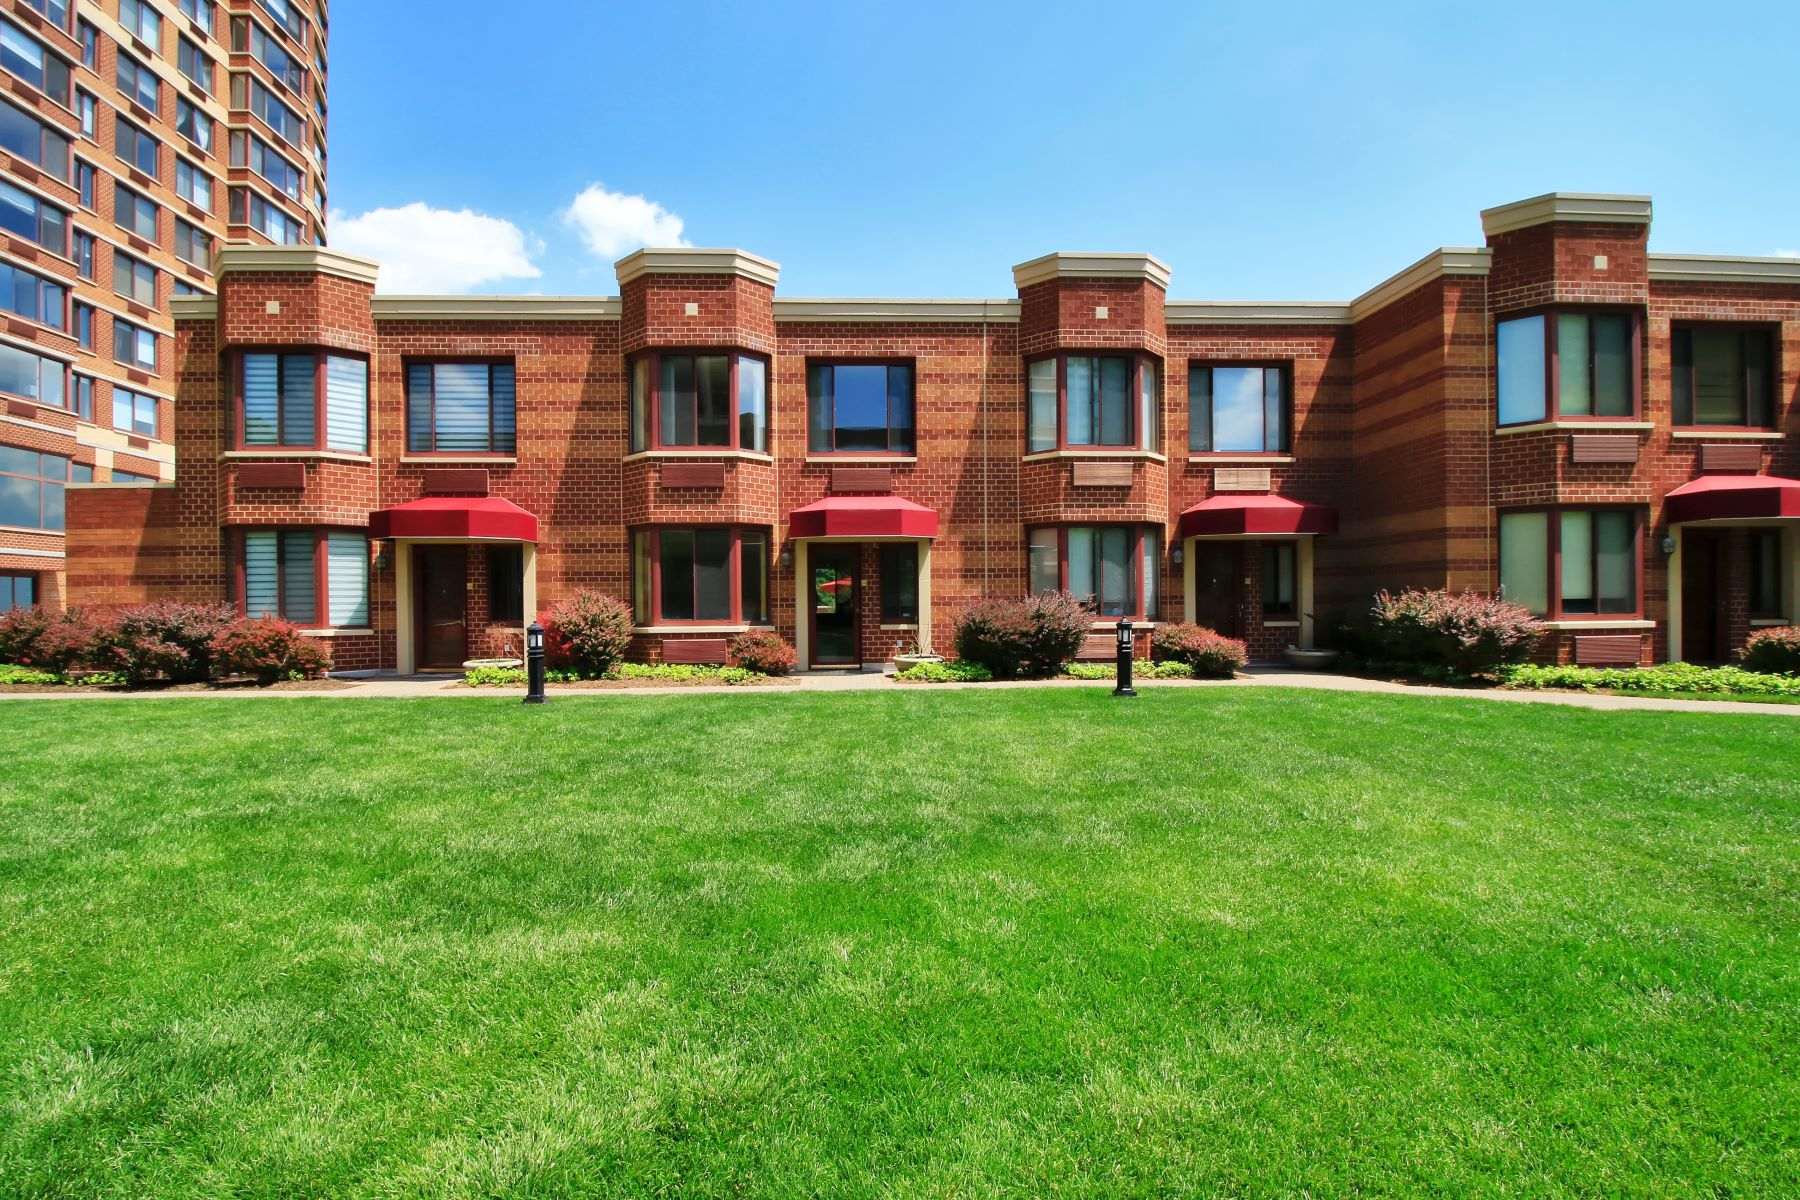 Condominium for Sale at Private and spacious townhouse in The Palisades! 100 Old Palisade Road #PL19 Fort Lee, New Jersey, 07024 United States